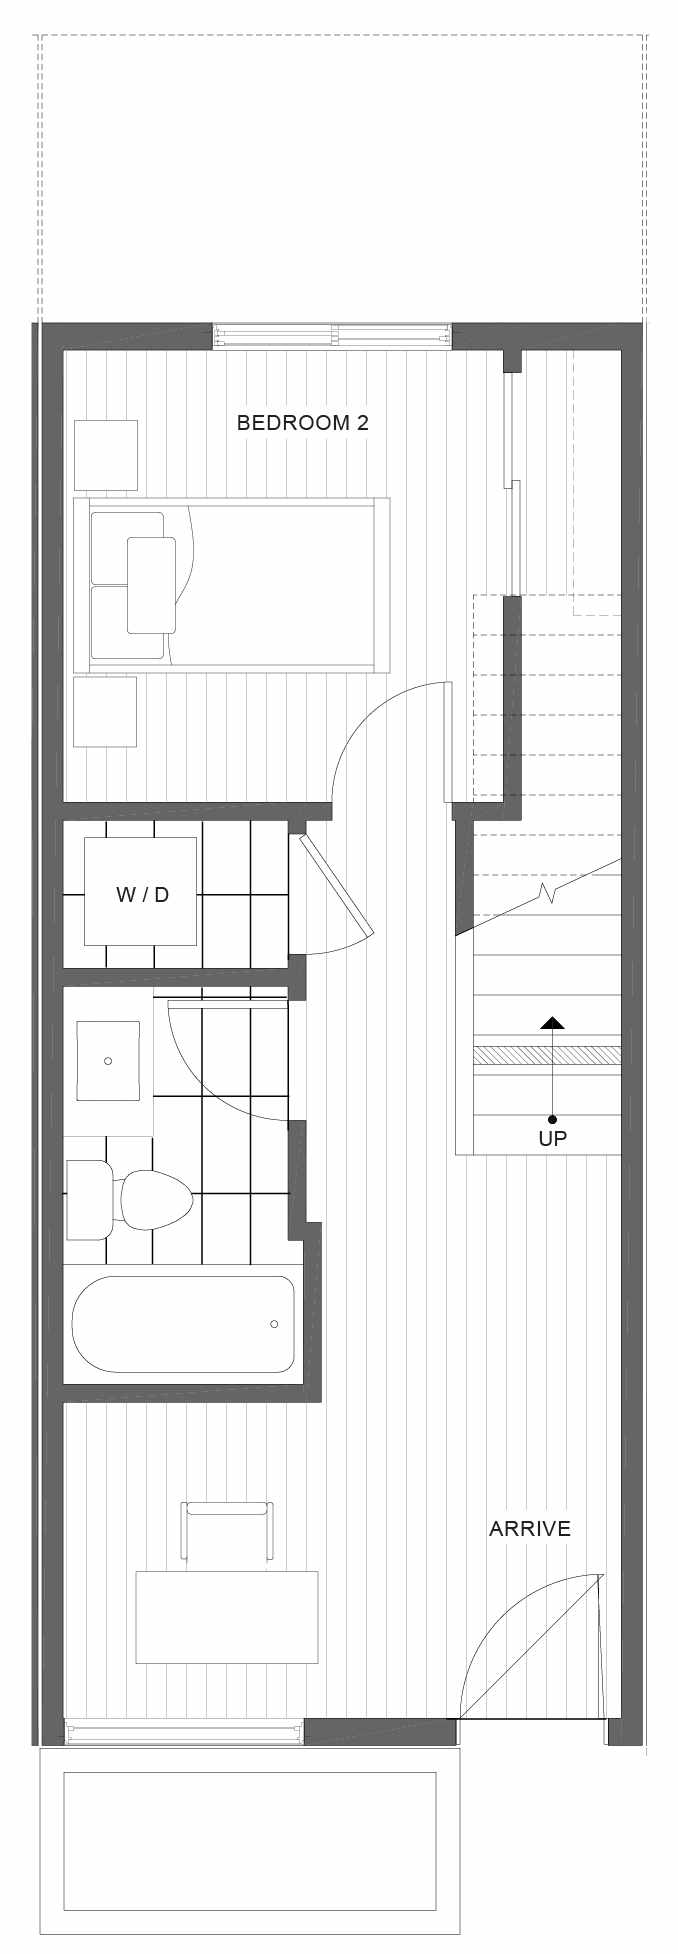 First Floor Plan of 1326 E Spring St in the Corazon Townhomes in Capitol Hill